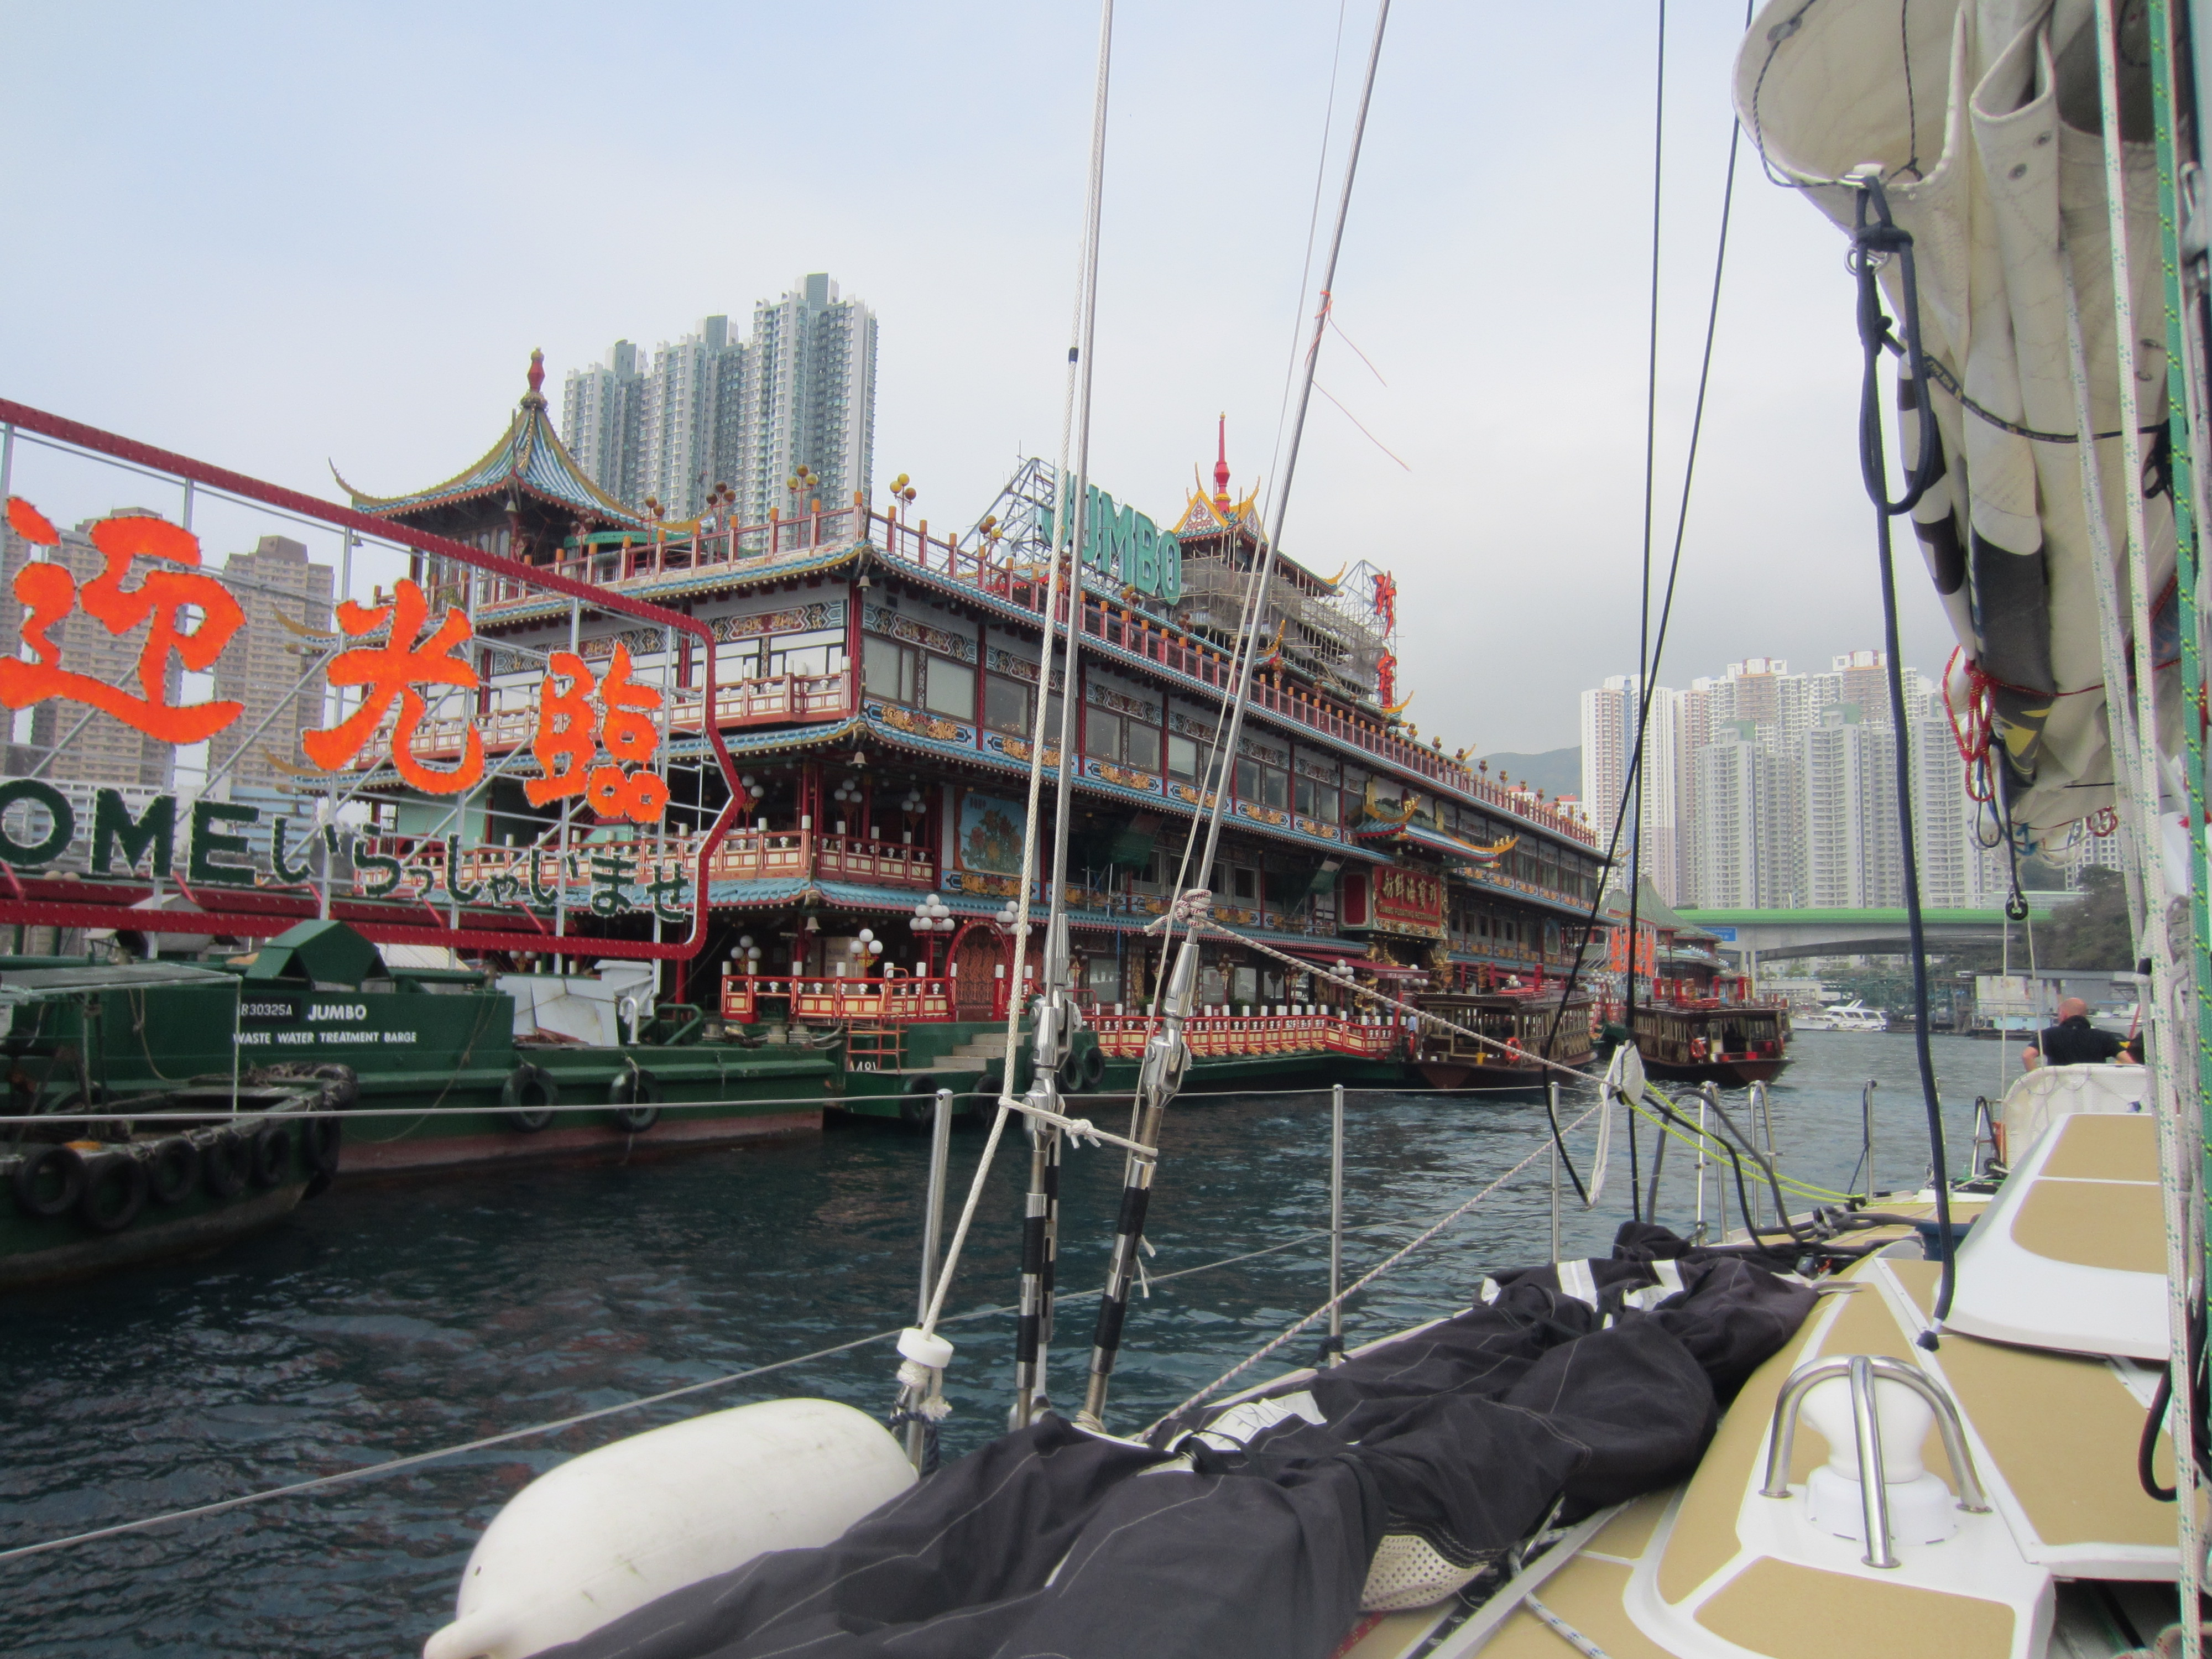 Jumbo, a floating Chinese Restaurant